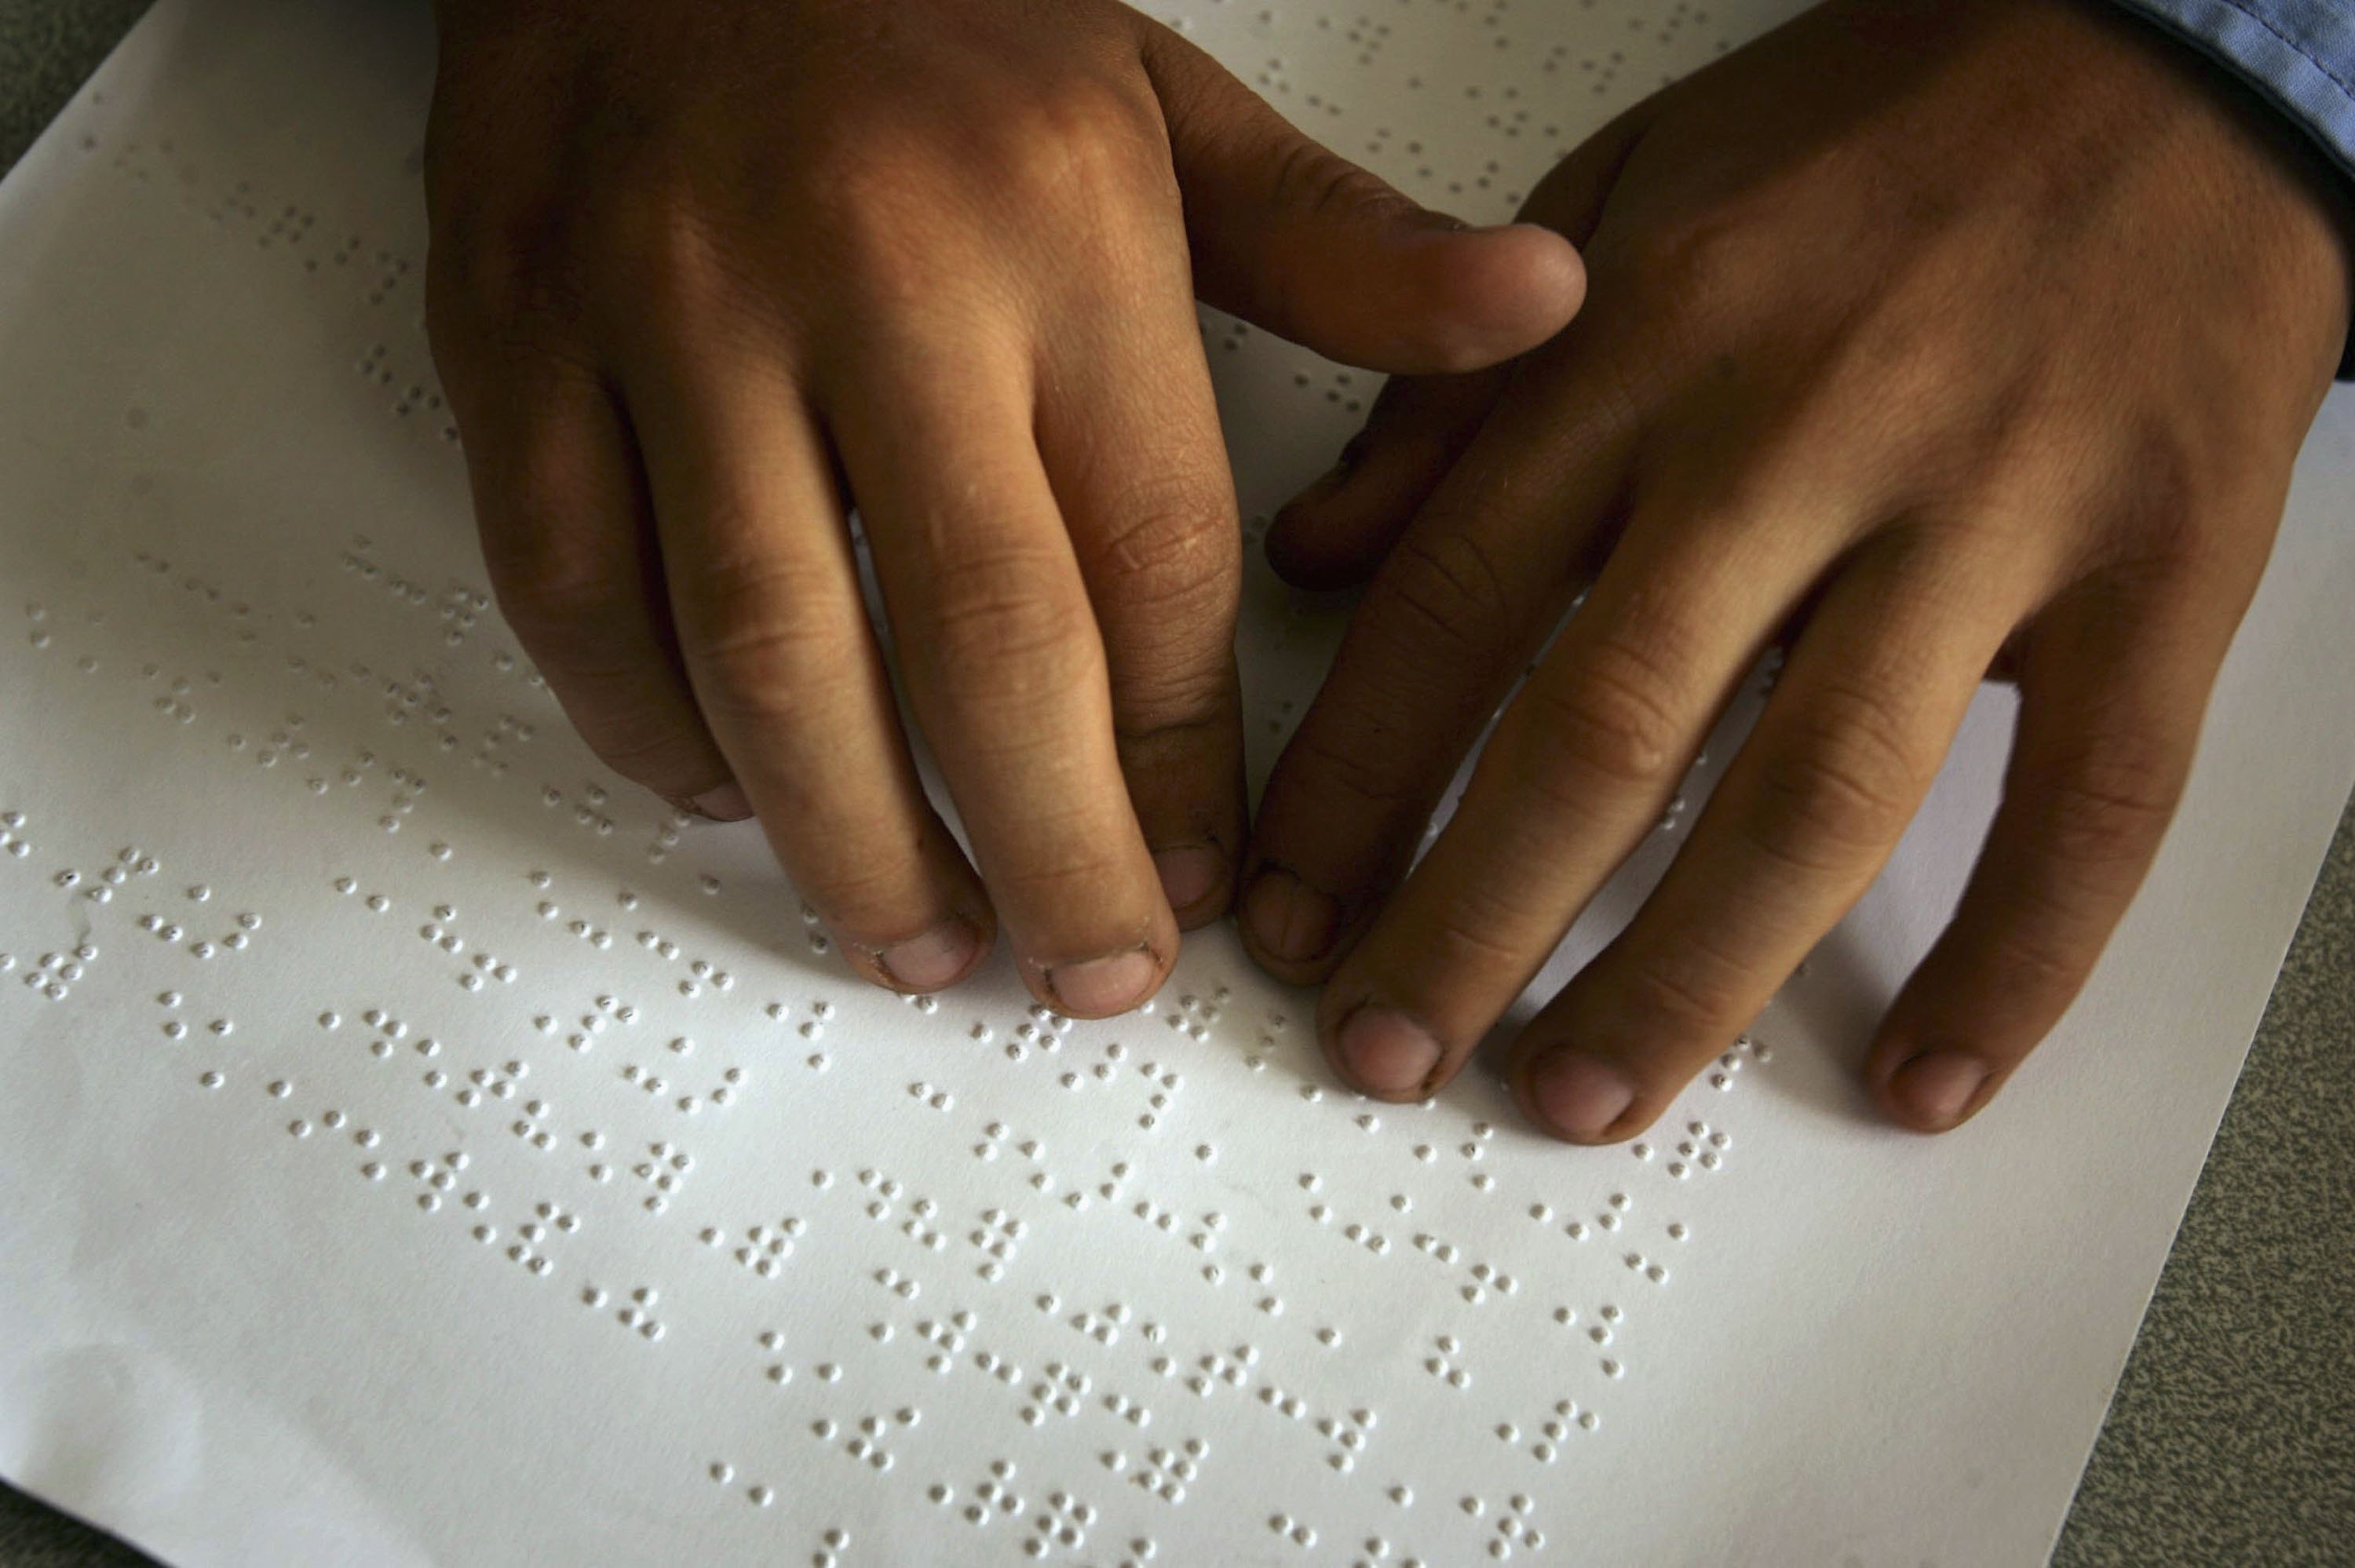 Two hands on a page written in braille